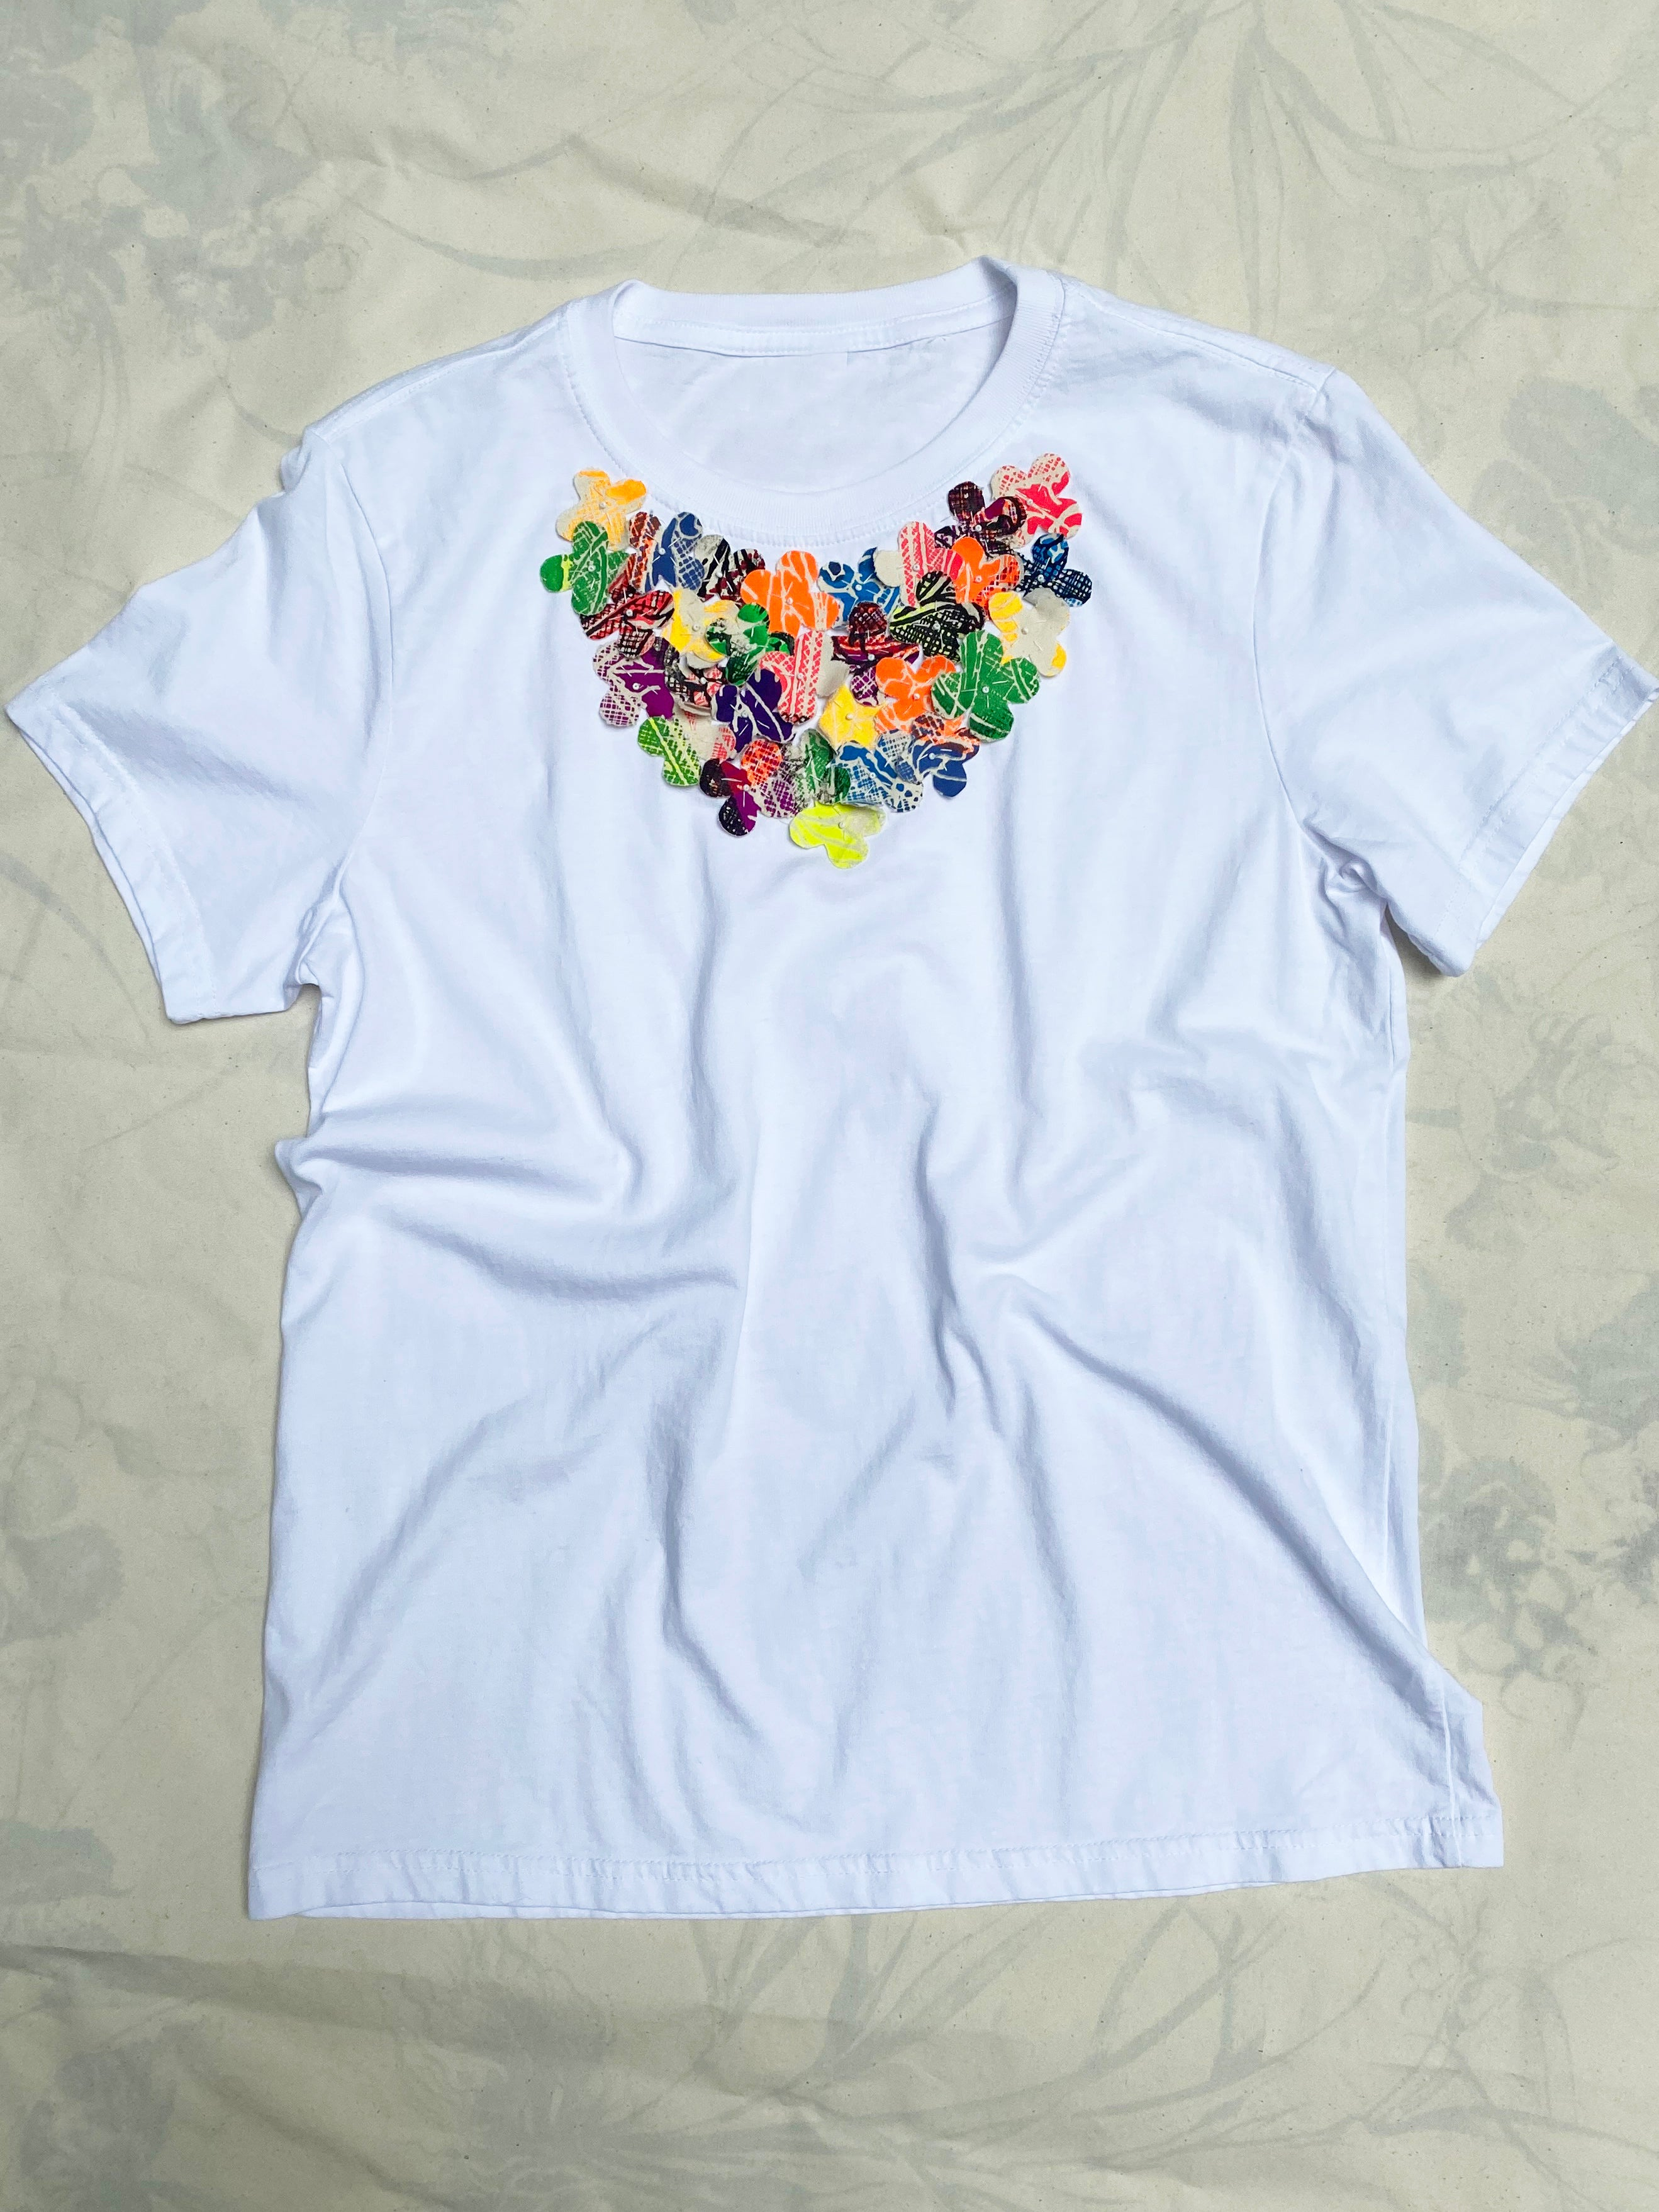 Flower Tee #2 - Womens Medium